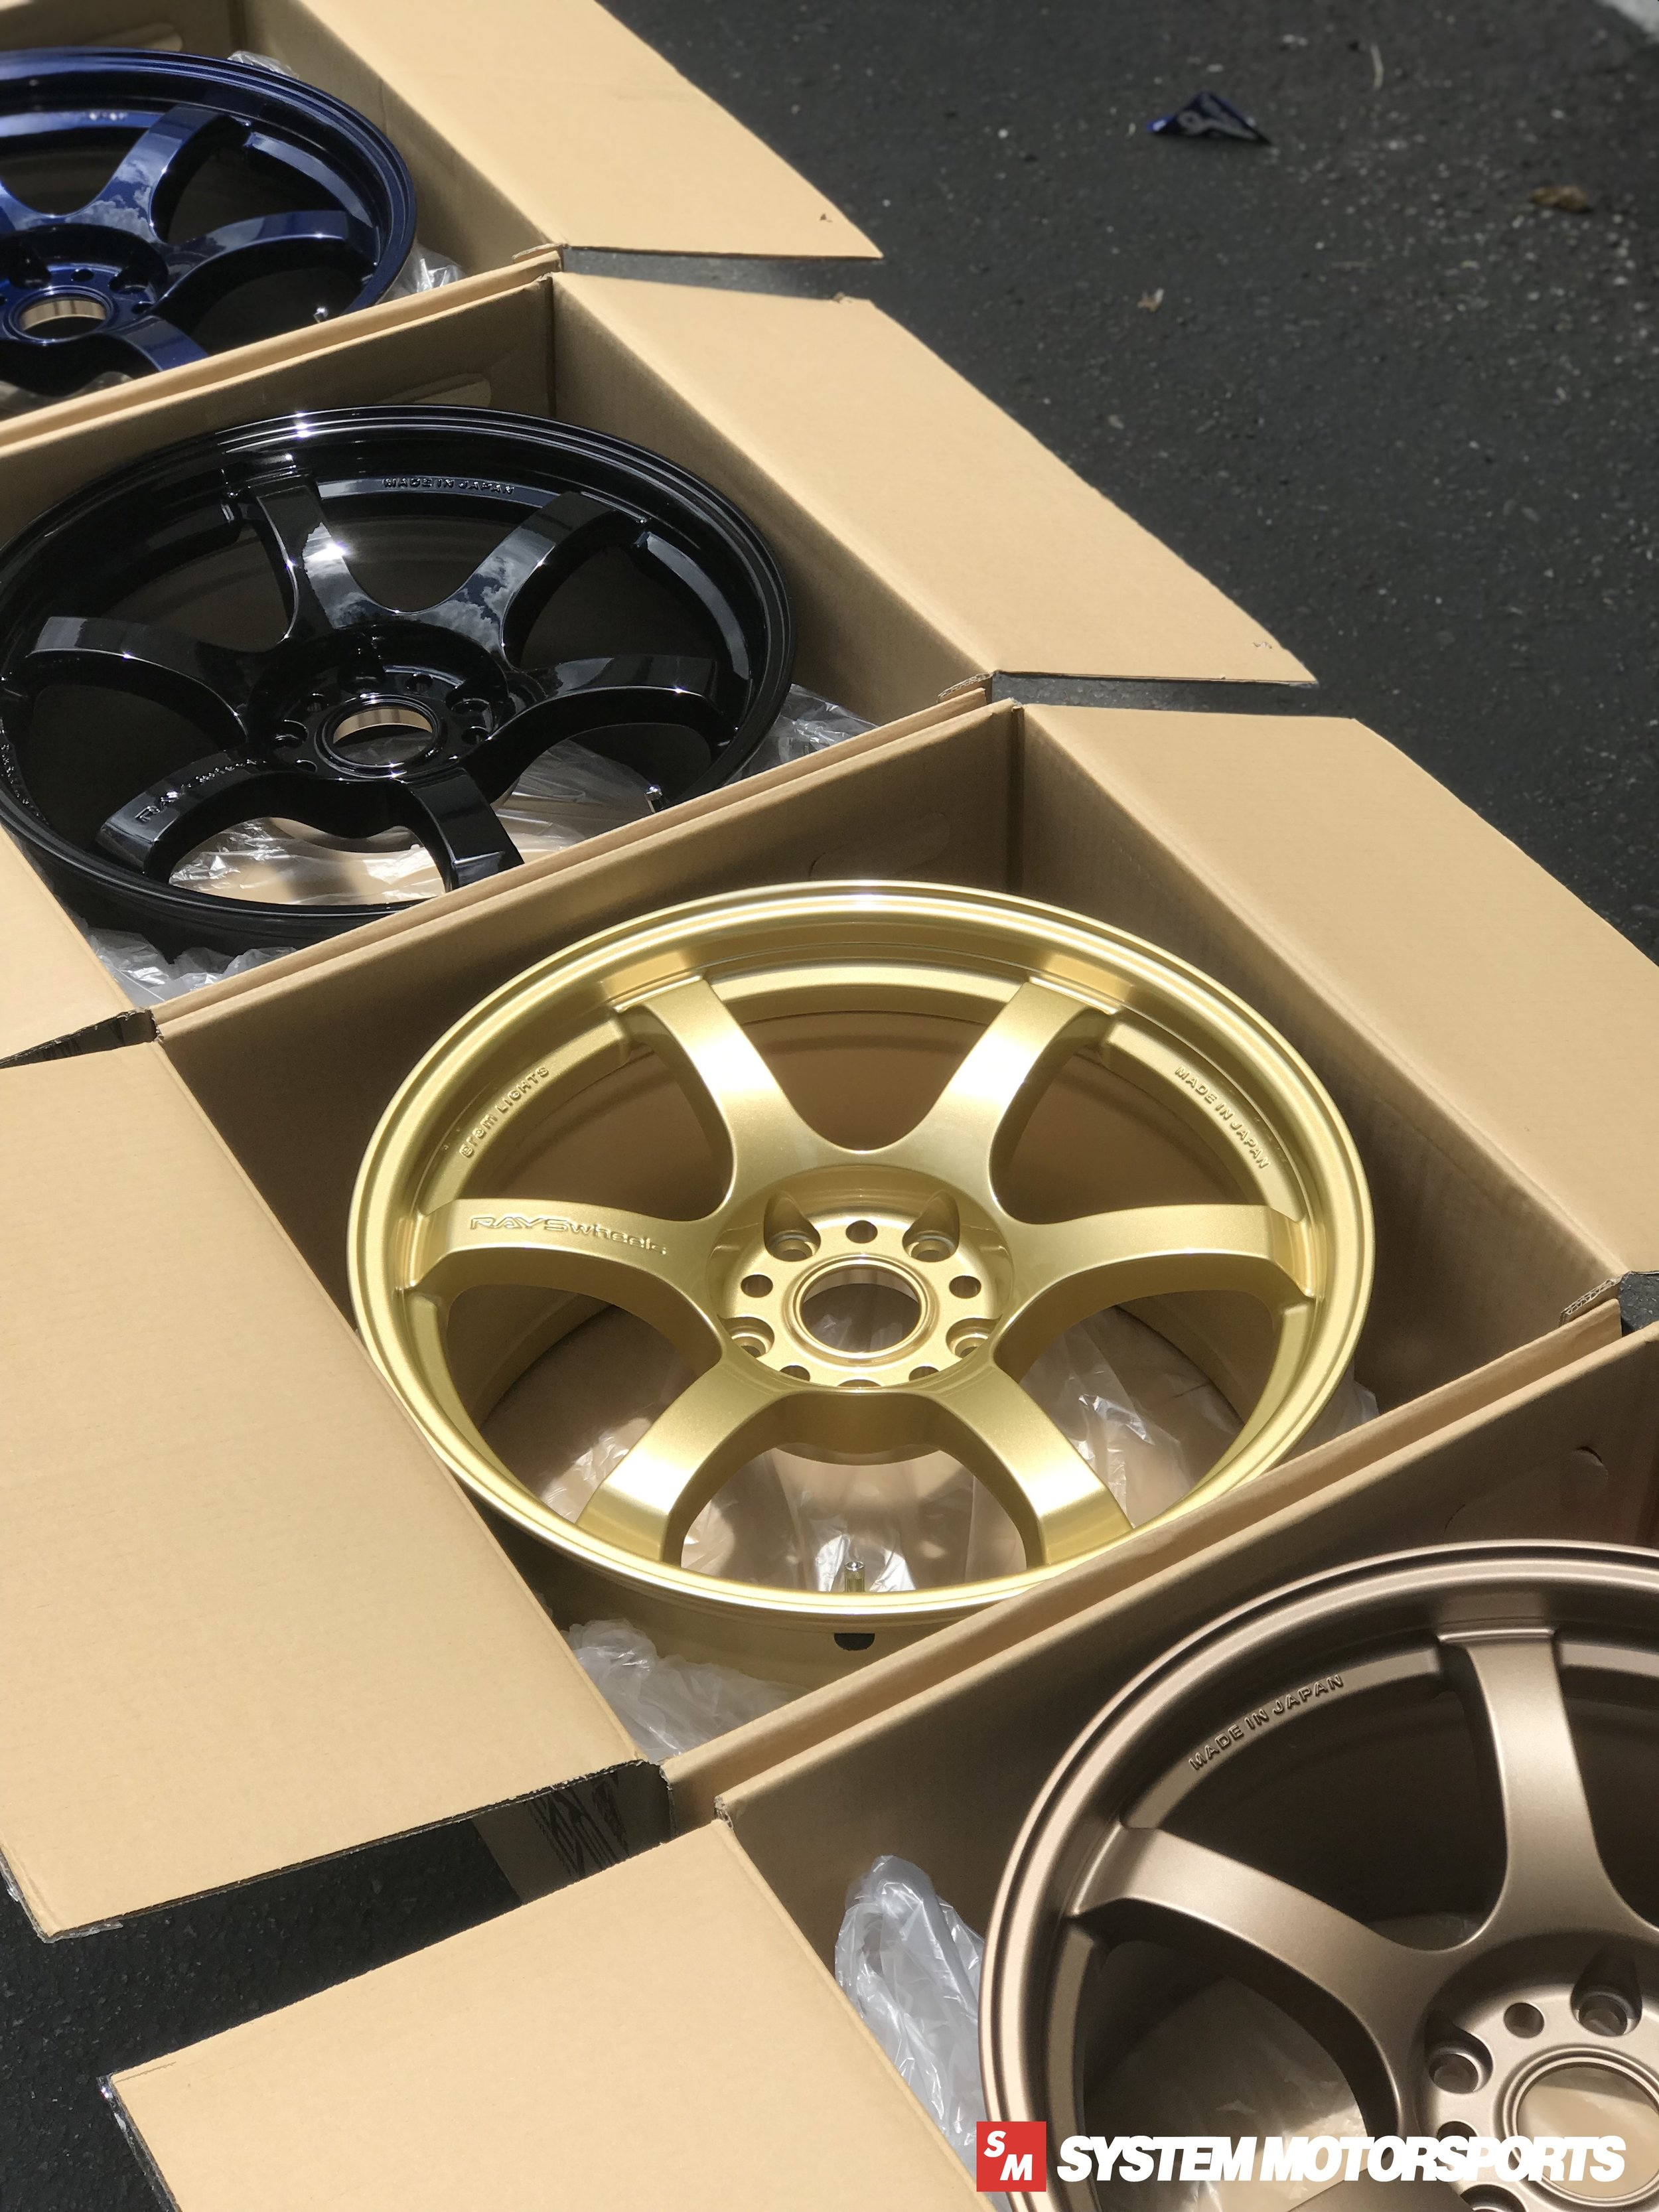 Rays Gramlights 57DR - 18x9.5 +38 5x120, shown in Gold (For the FK8 Type R Platform!)